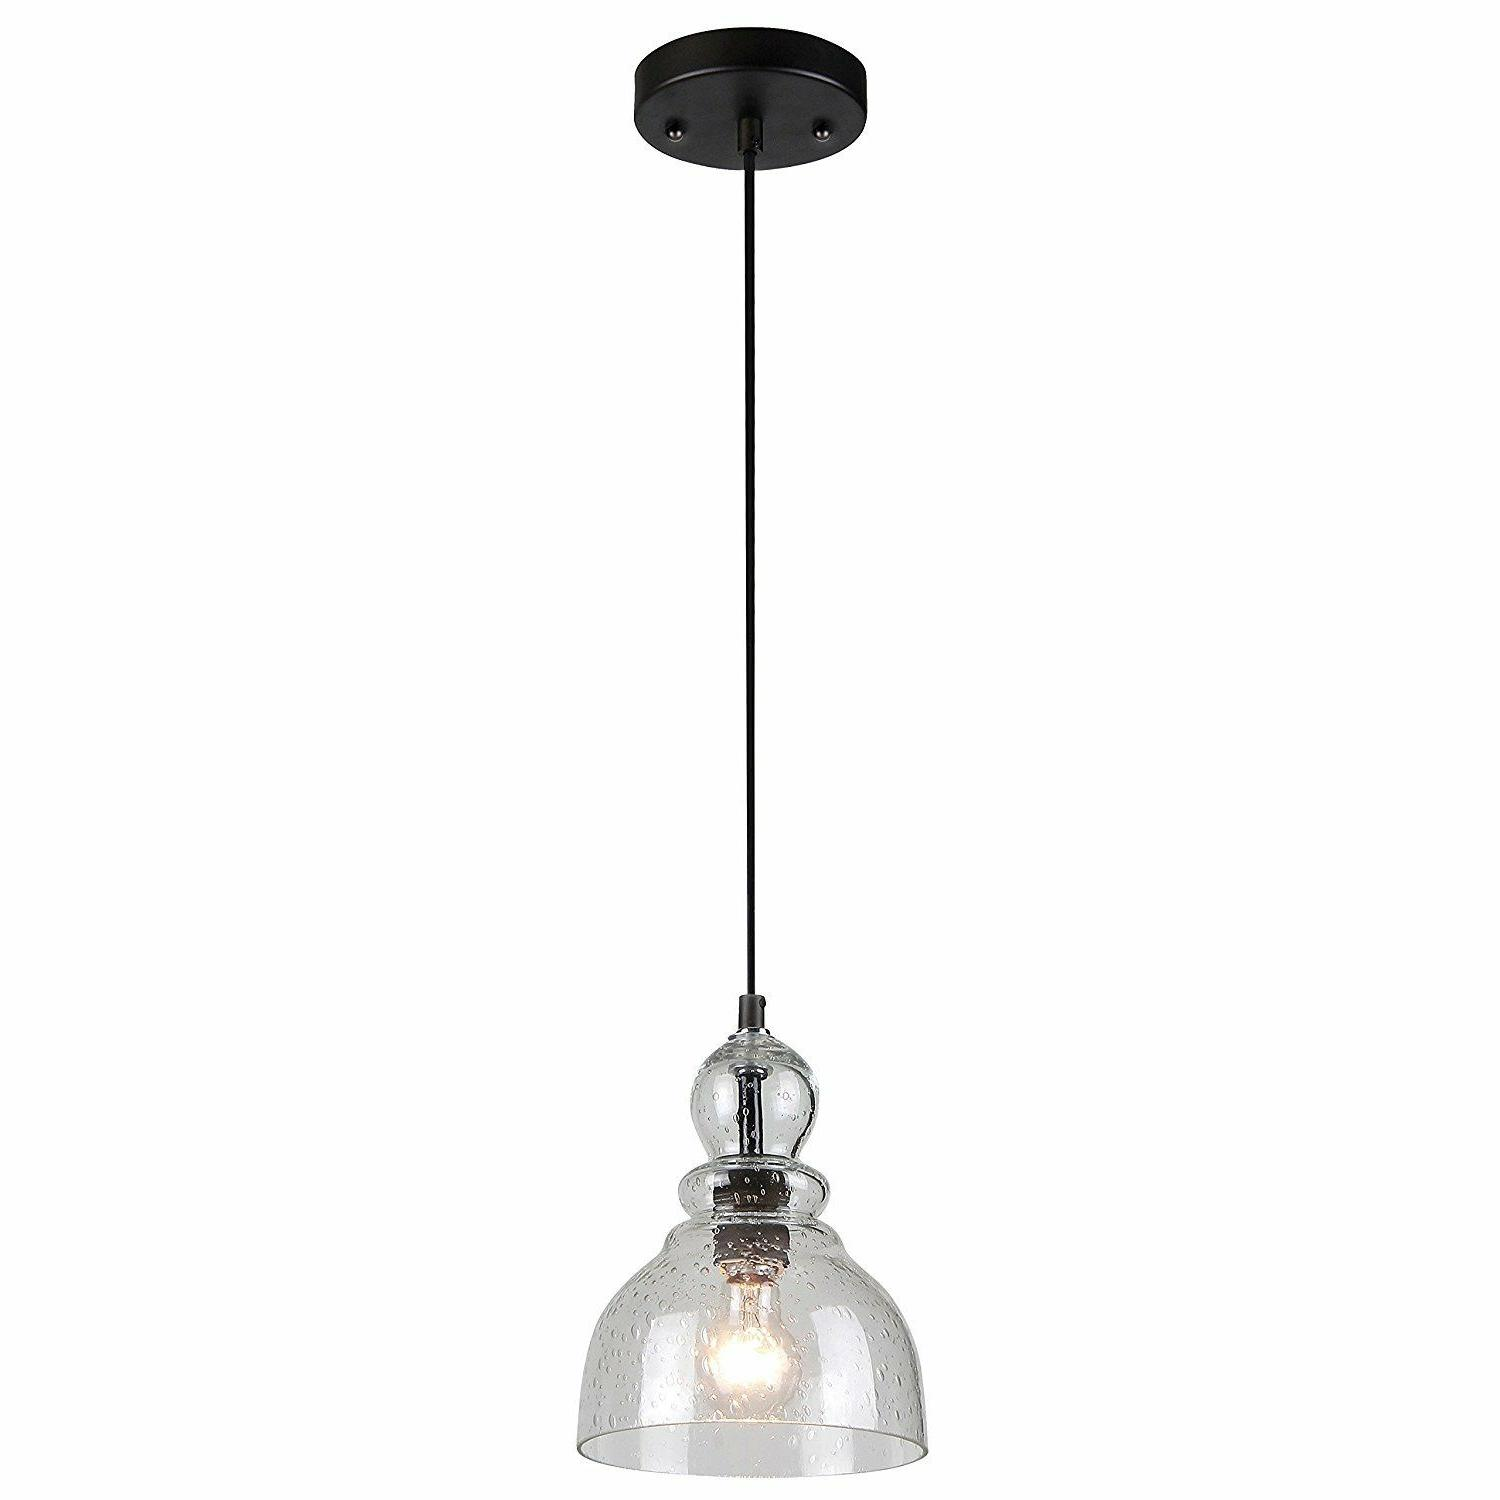 Classic Look Seeded Glass Adjustable Light Fixture Kitchen F